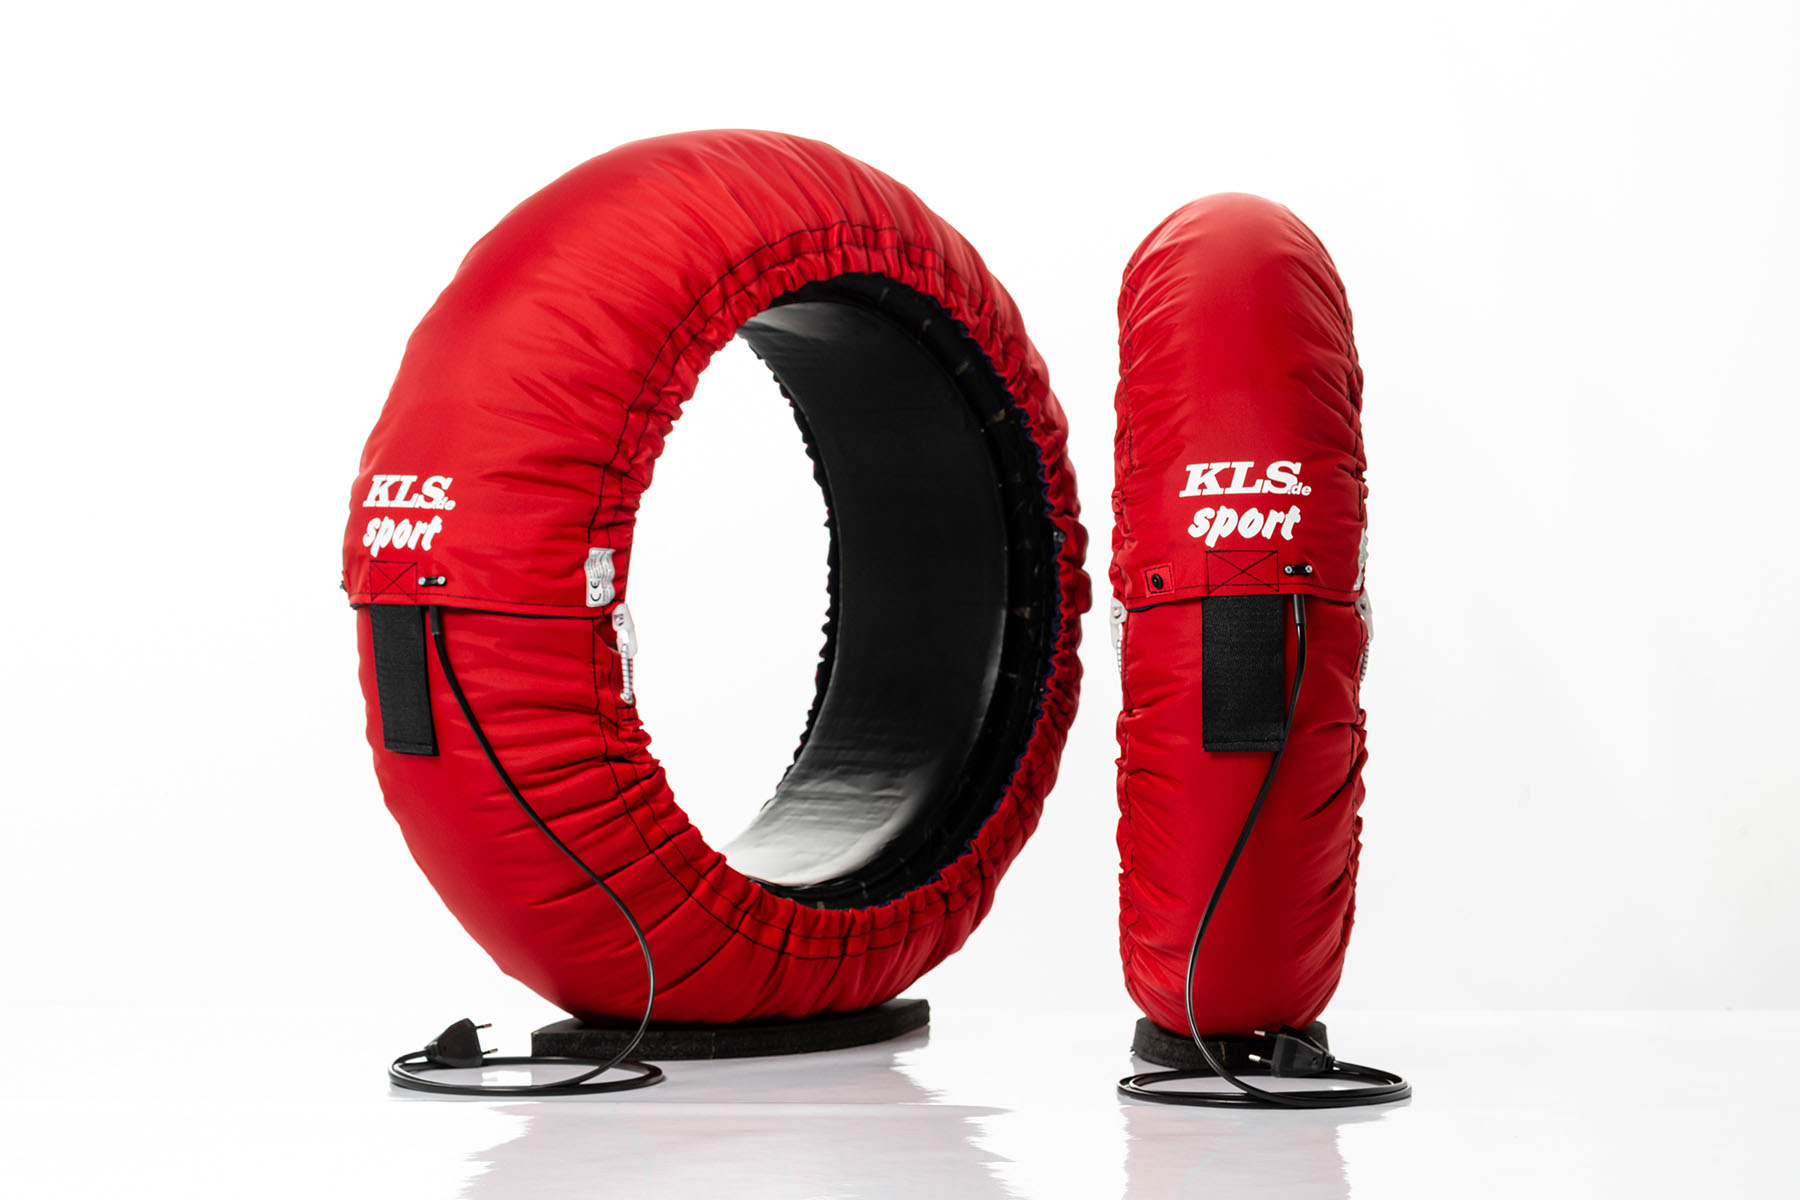 tyrewarmer--kls-sport-color-red